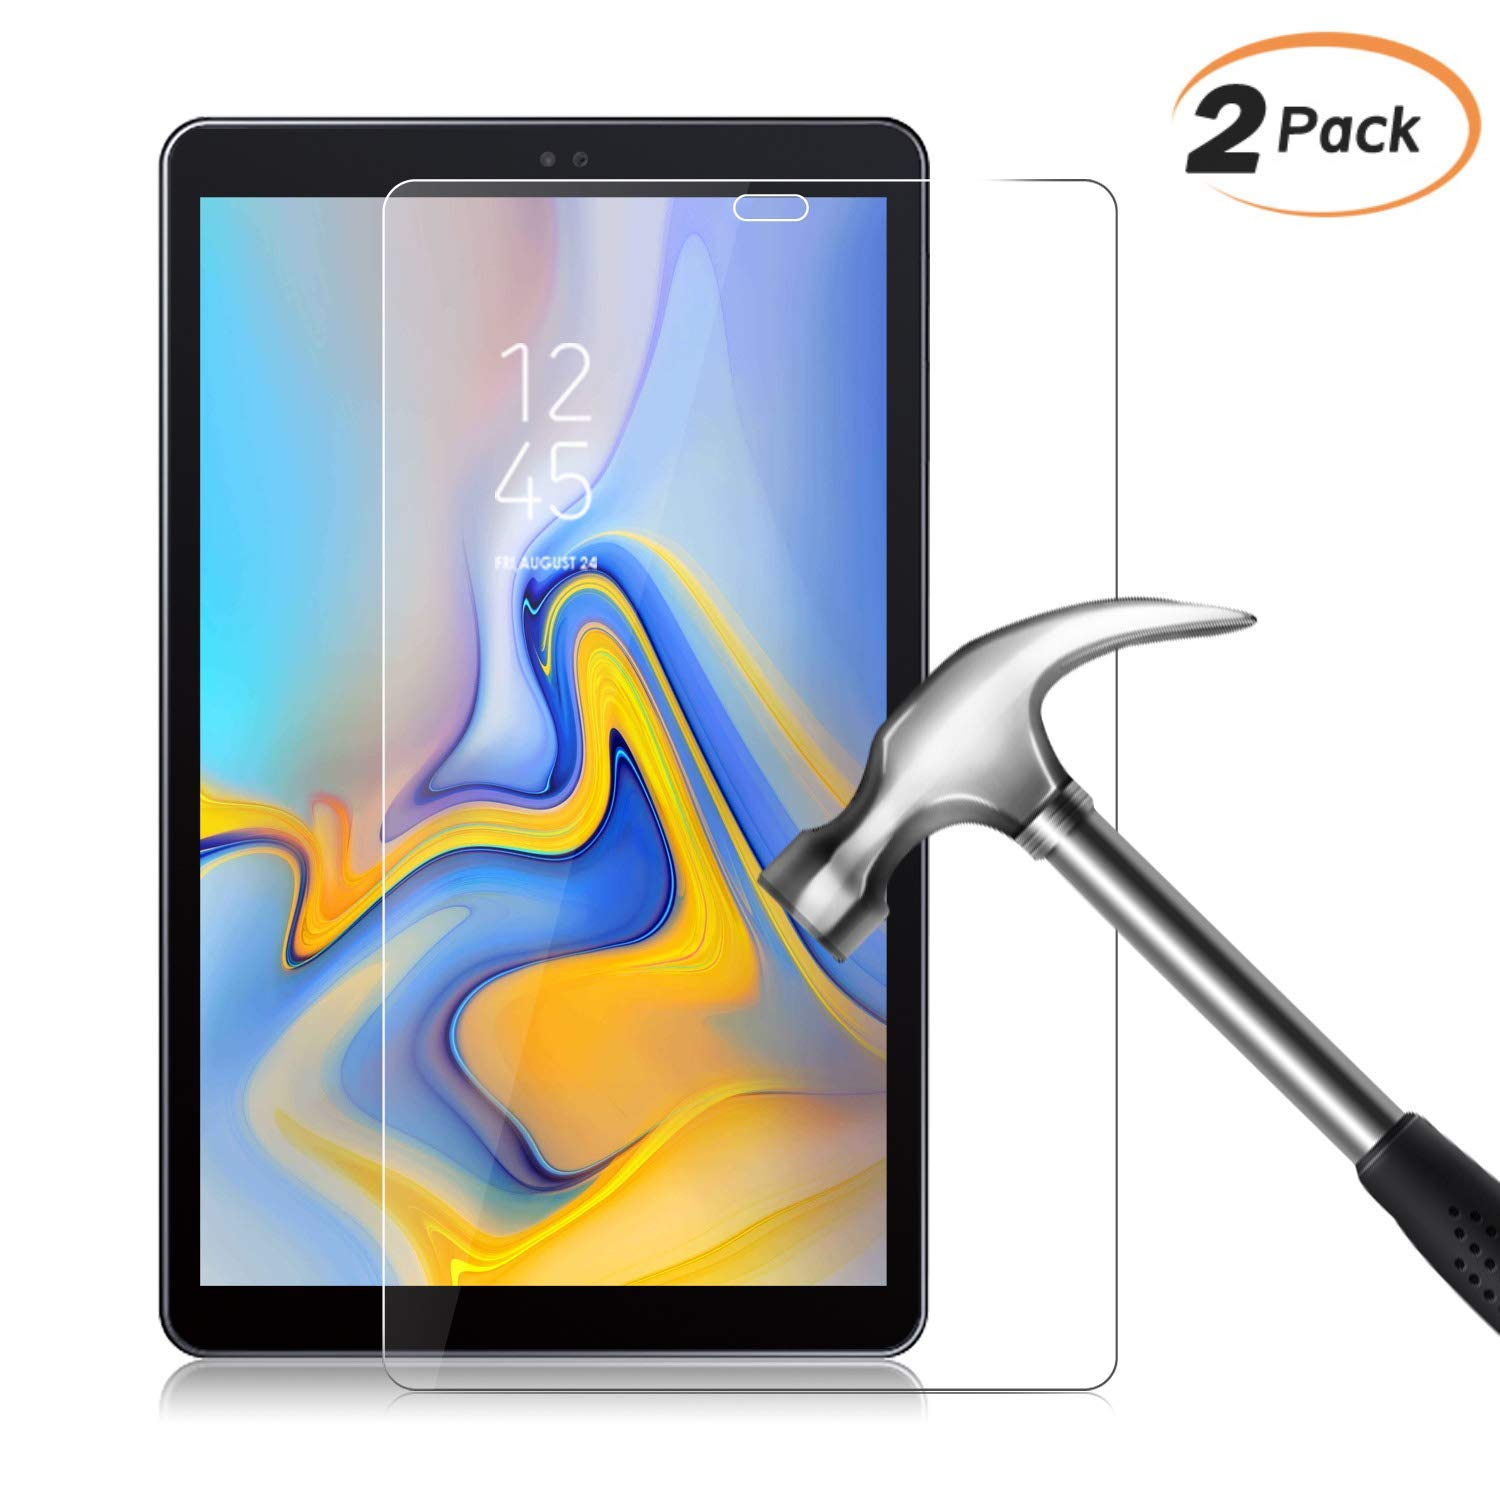 Clear High Definition SM-T590//T595 Film KATUMO Screen Protector for Samsung Galaxy Tab A 10.5 2018 Tempered Glass 2-Pack